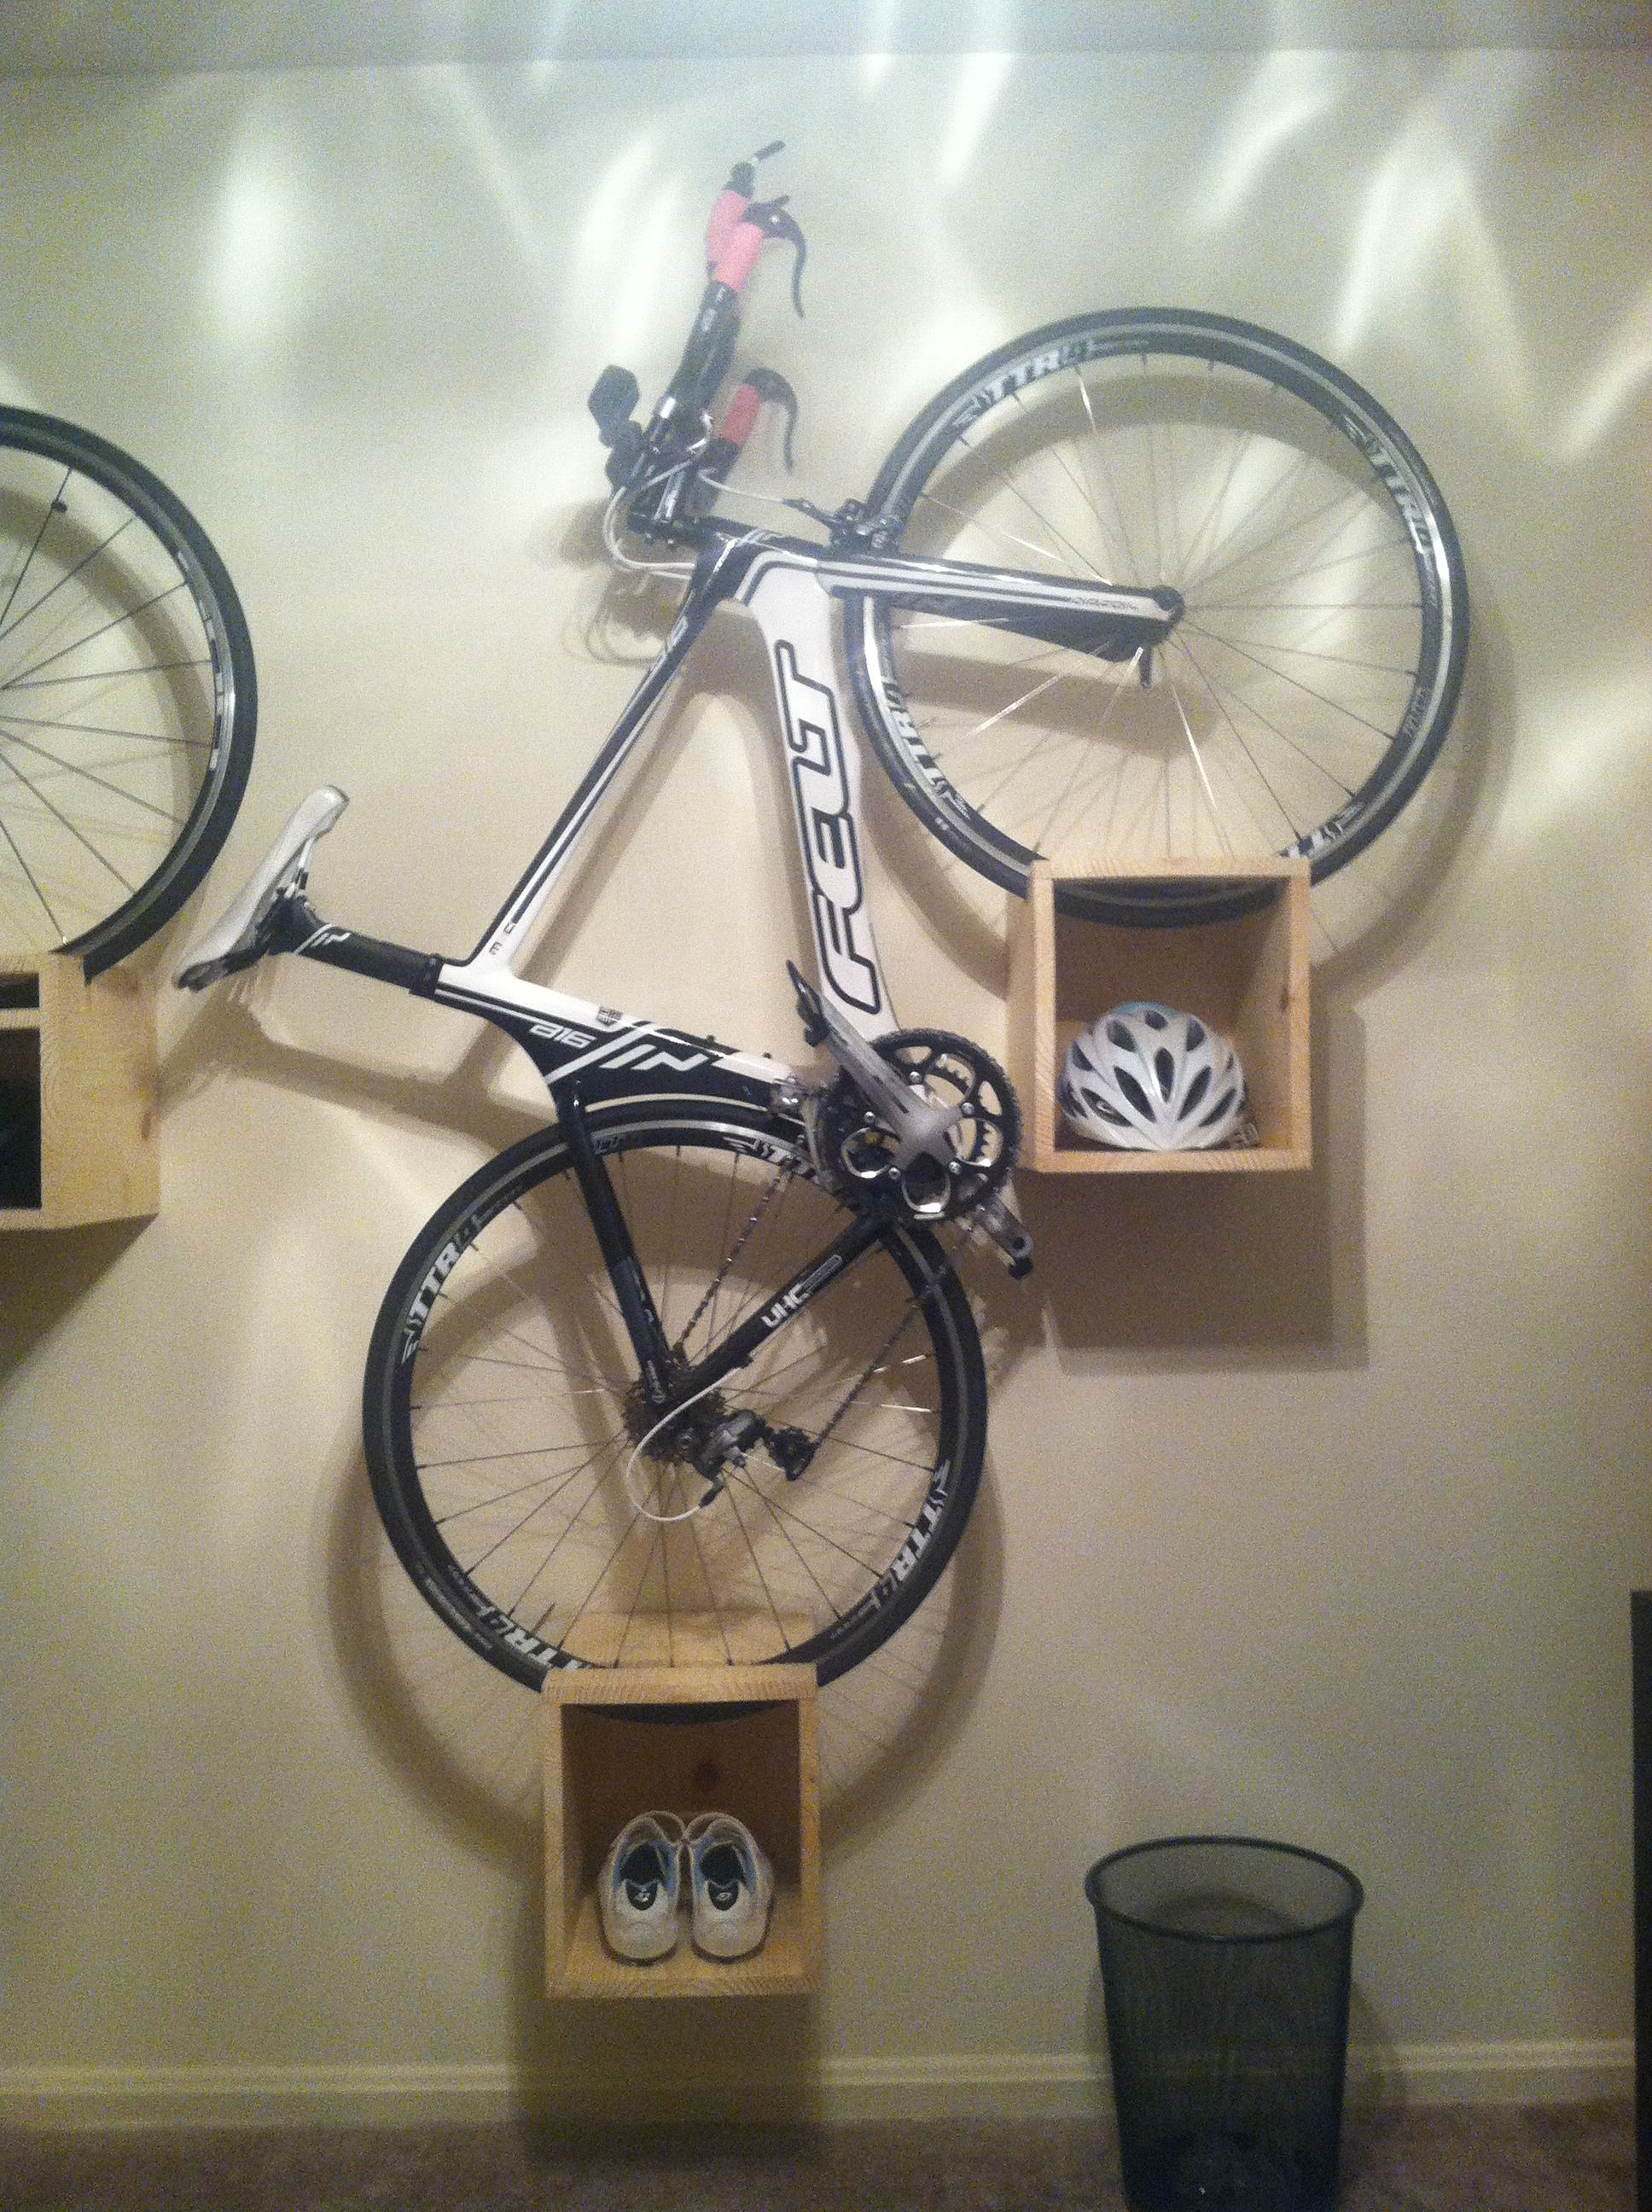 Bike Rack For The Garage Diy Bike Rack Garage Organization Pinterest Diy Bike Rack